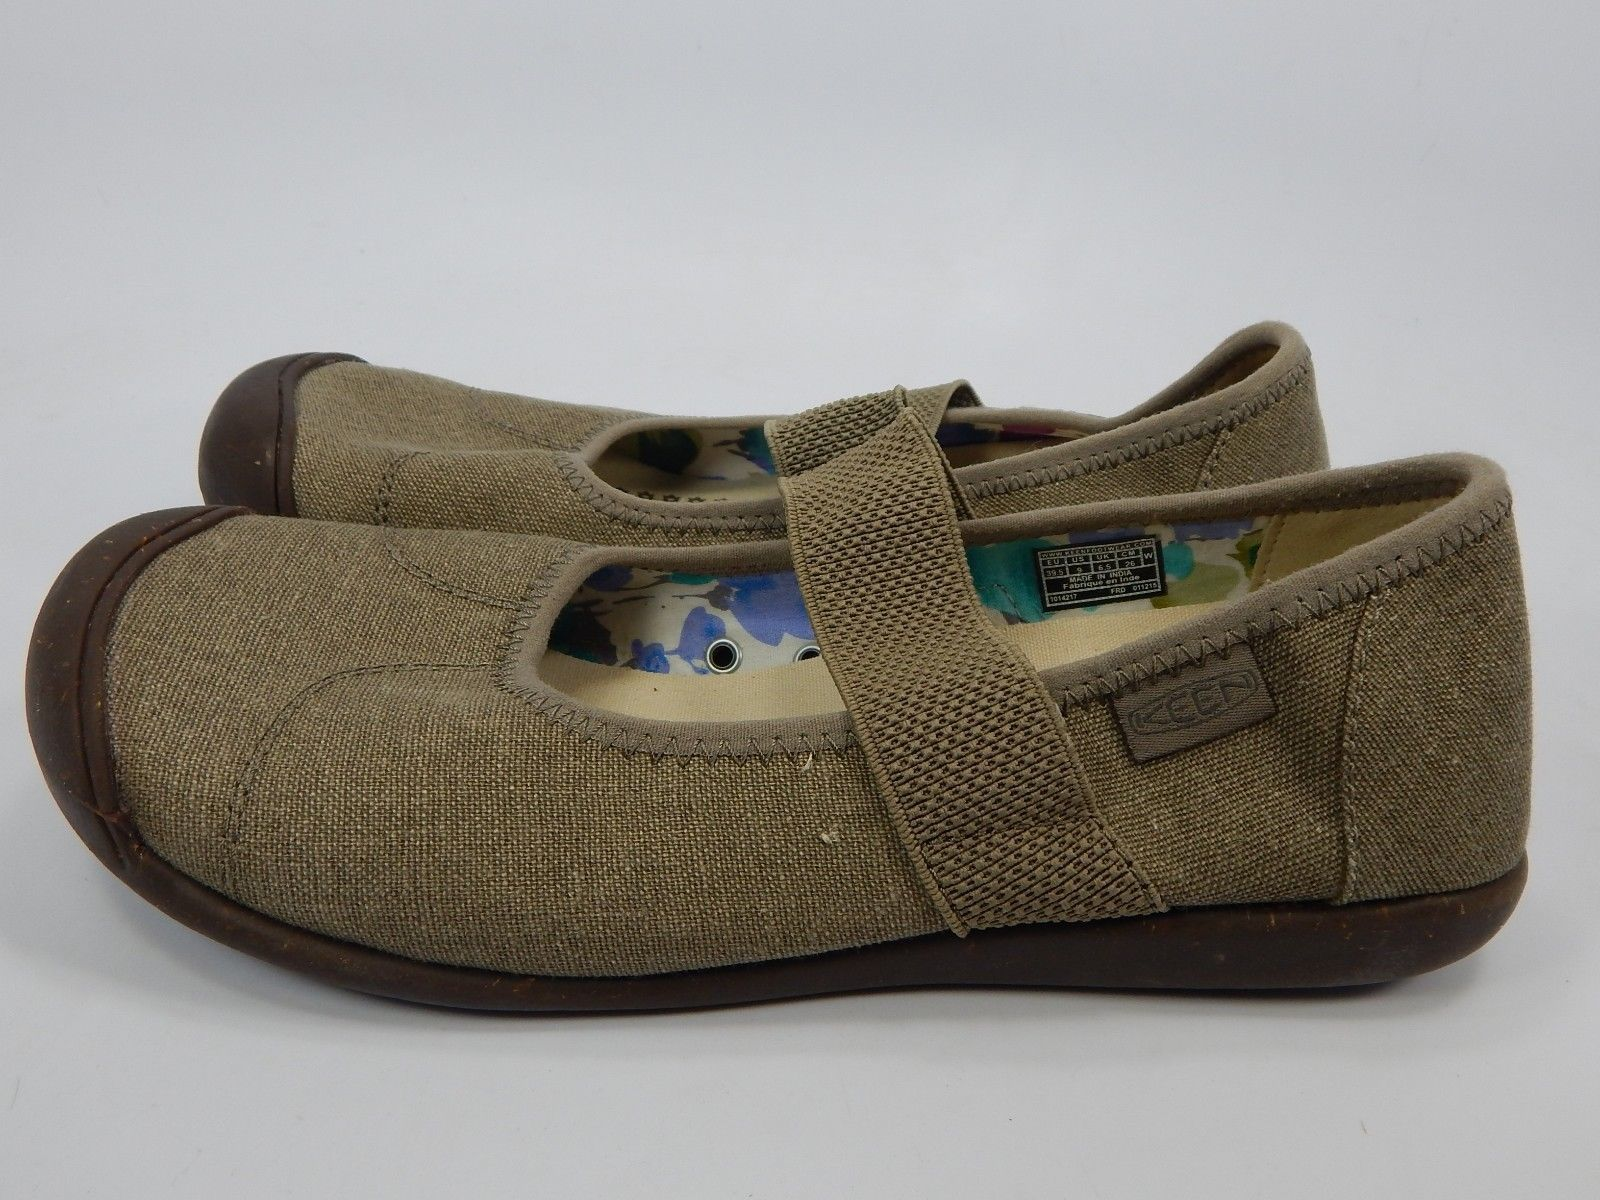 Keen Sienna Mary Jane Size: 9 M (B) EU 39.5 Women's Canvas Shoe Brindle 1014217